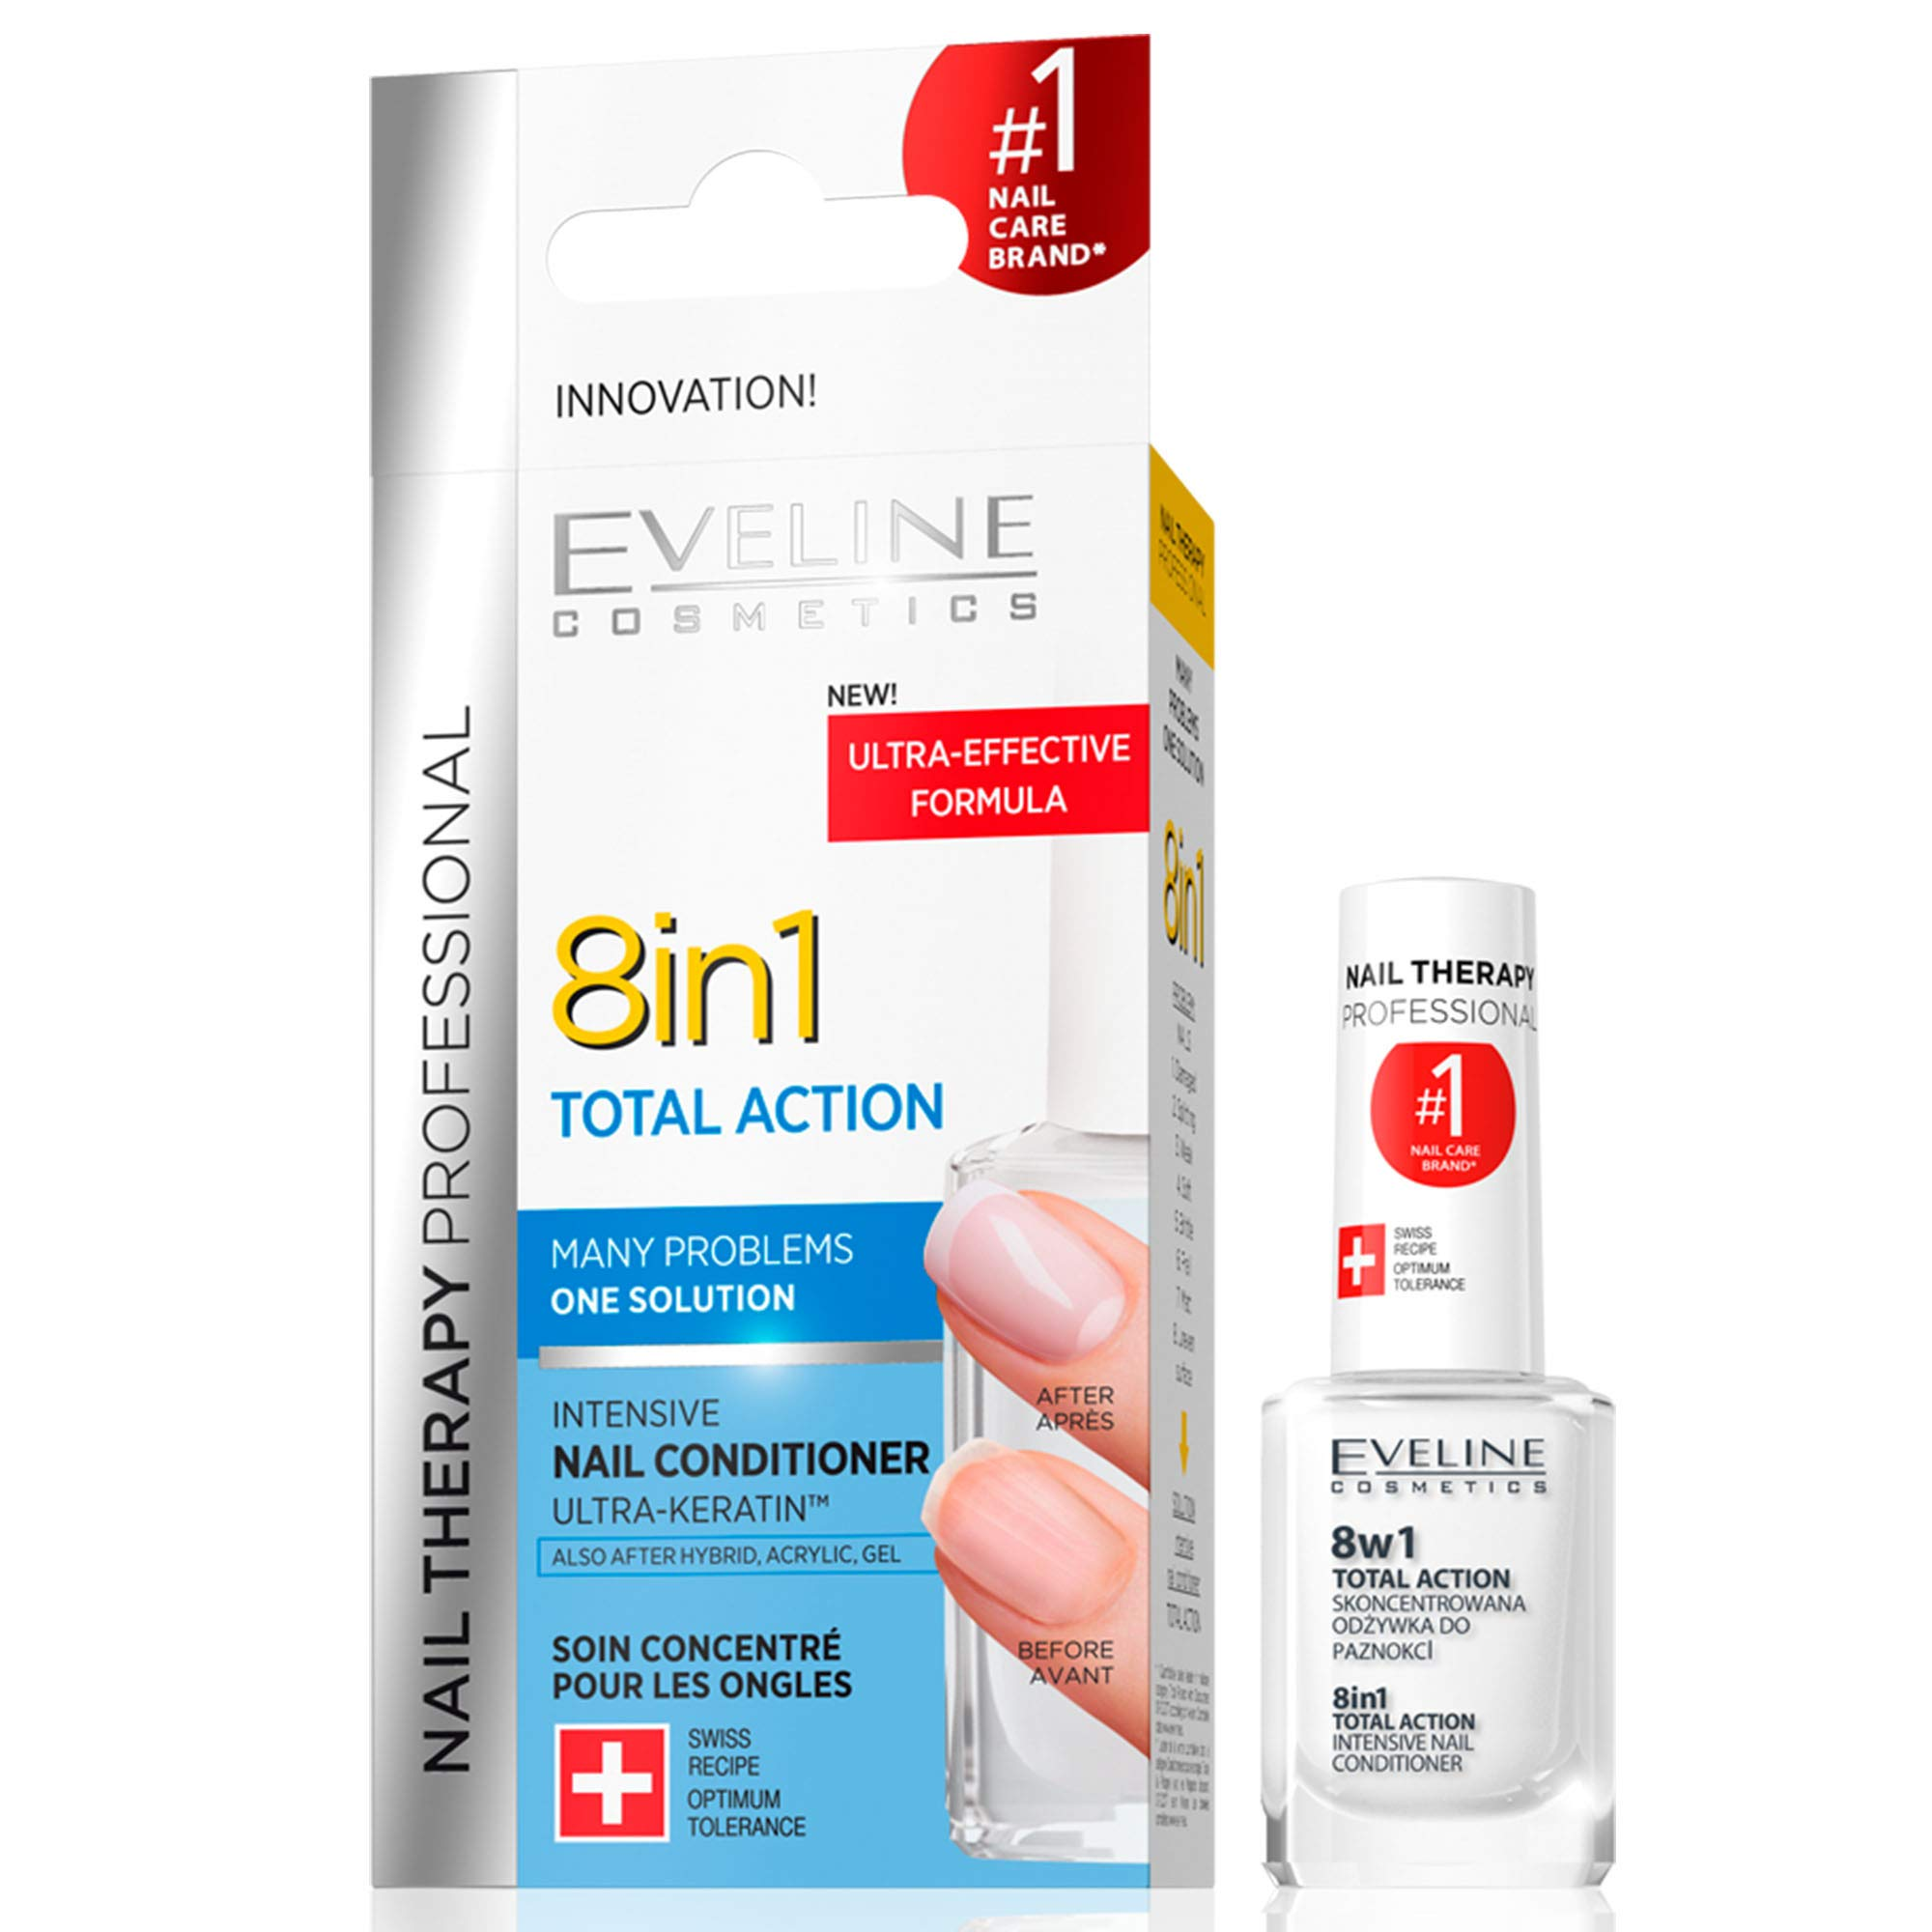 Eveline Cosmetics Nail Therapy Professional 8in1 Total Action | 12 ML | Concentrated Conditioner Strengthener Hardener | Growth Activator | Repair Treatment | Easy Application